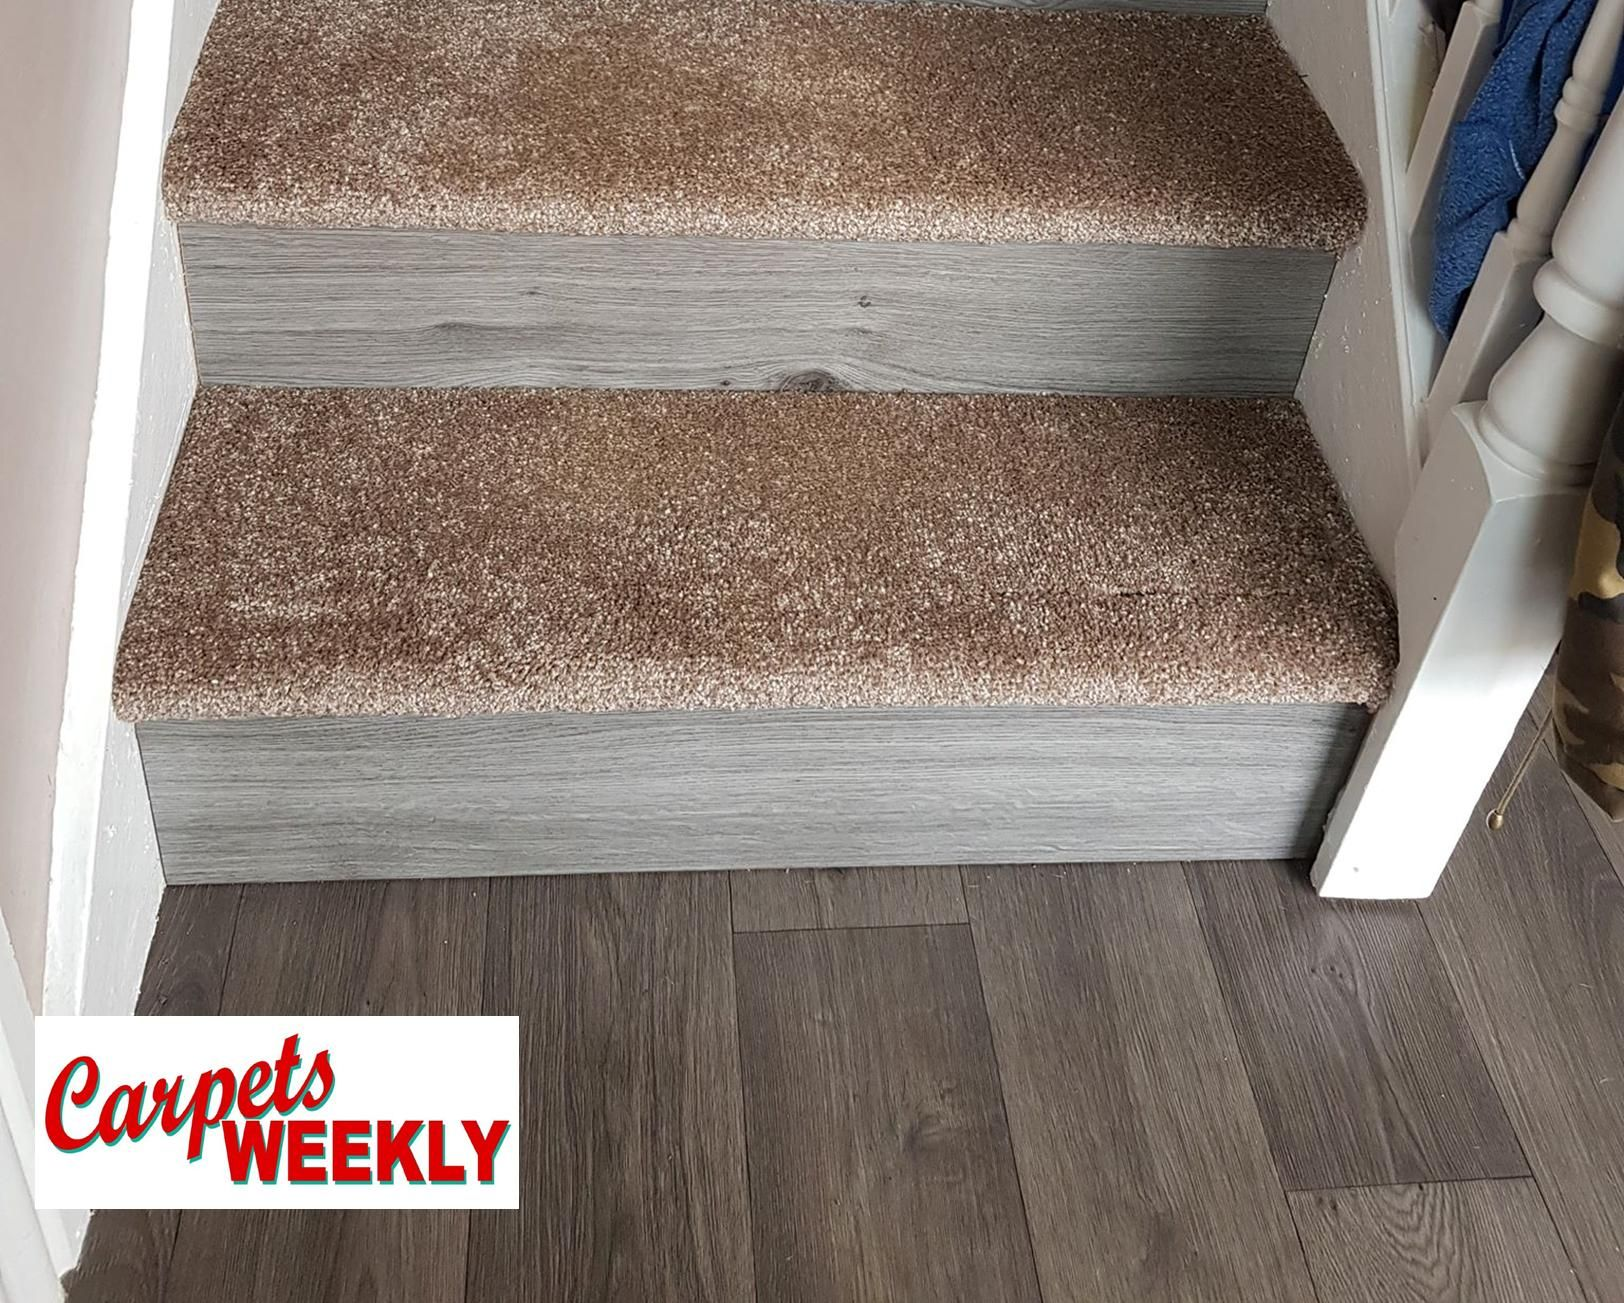 Carpets Weekly, Apollo Camel Carpet and Grey Oak Laminate 1